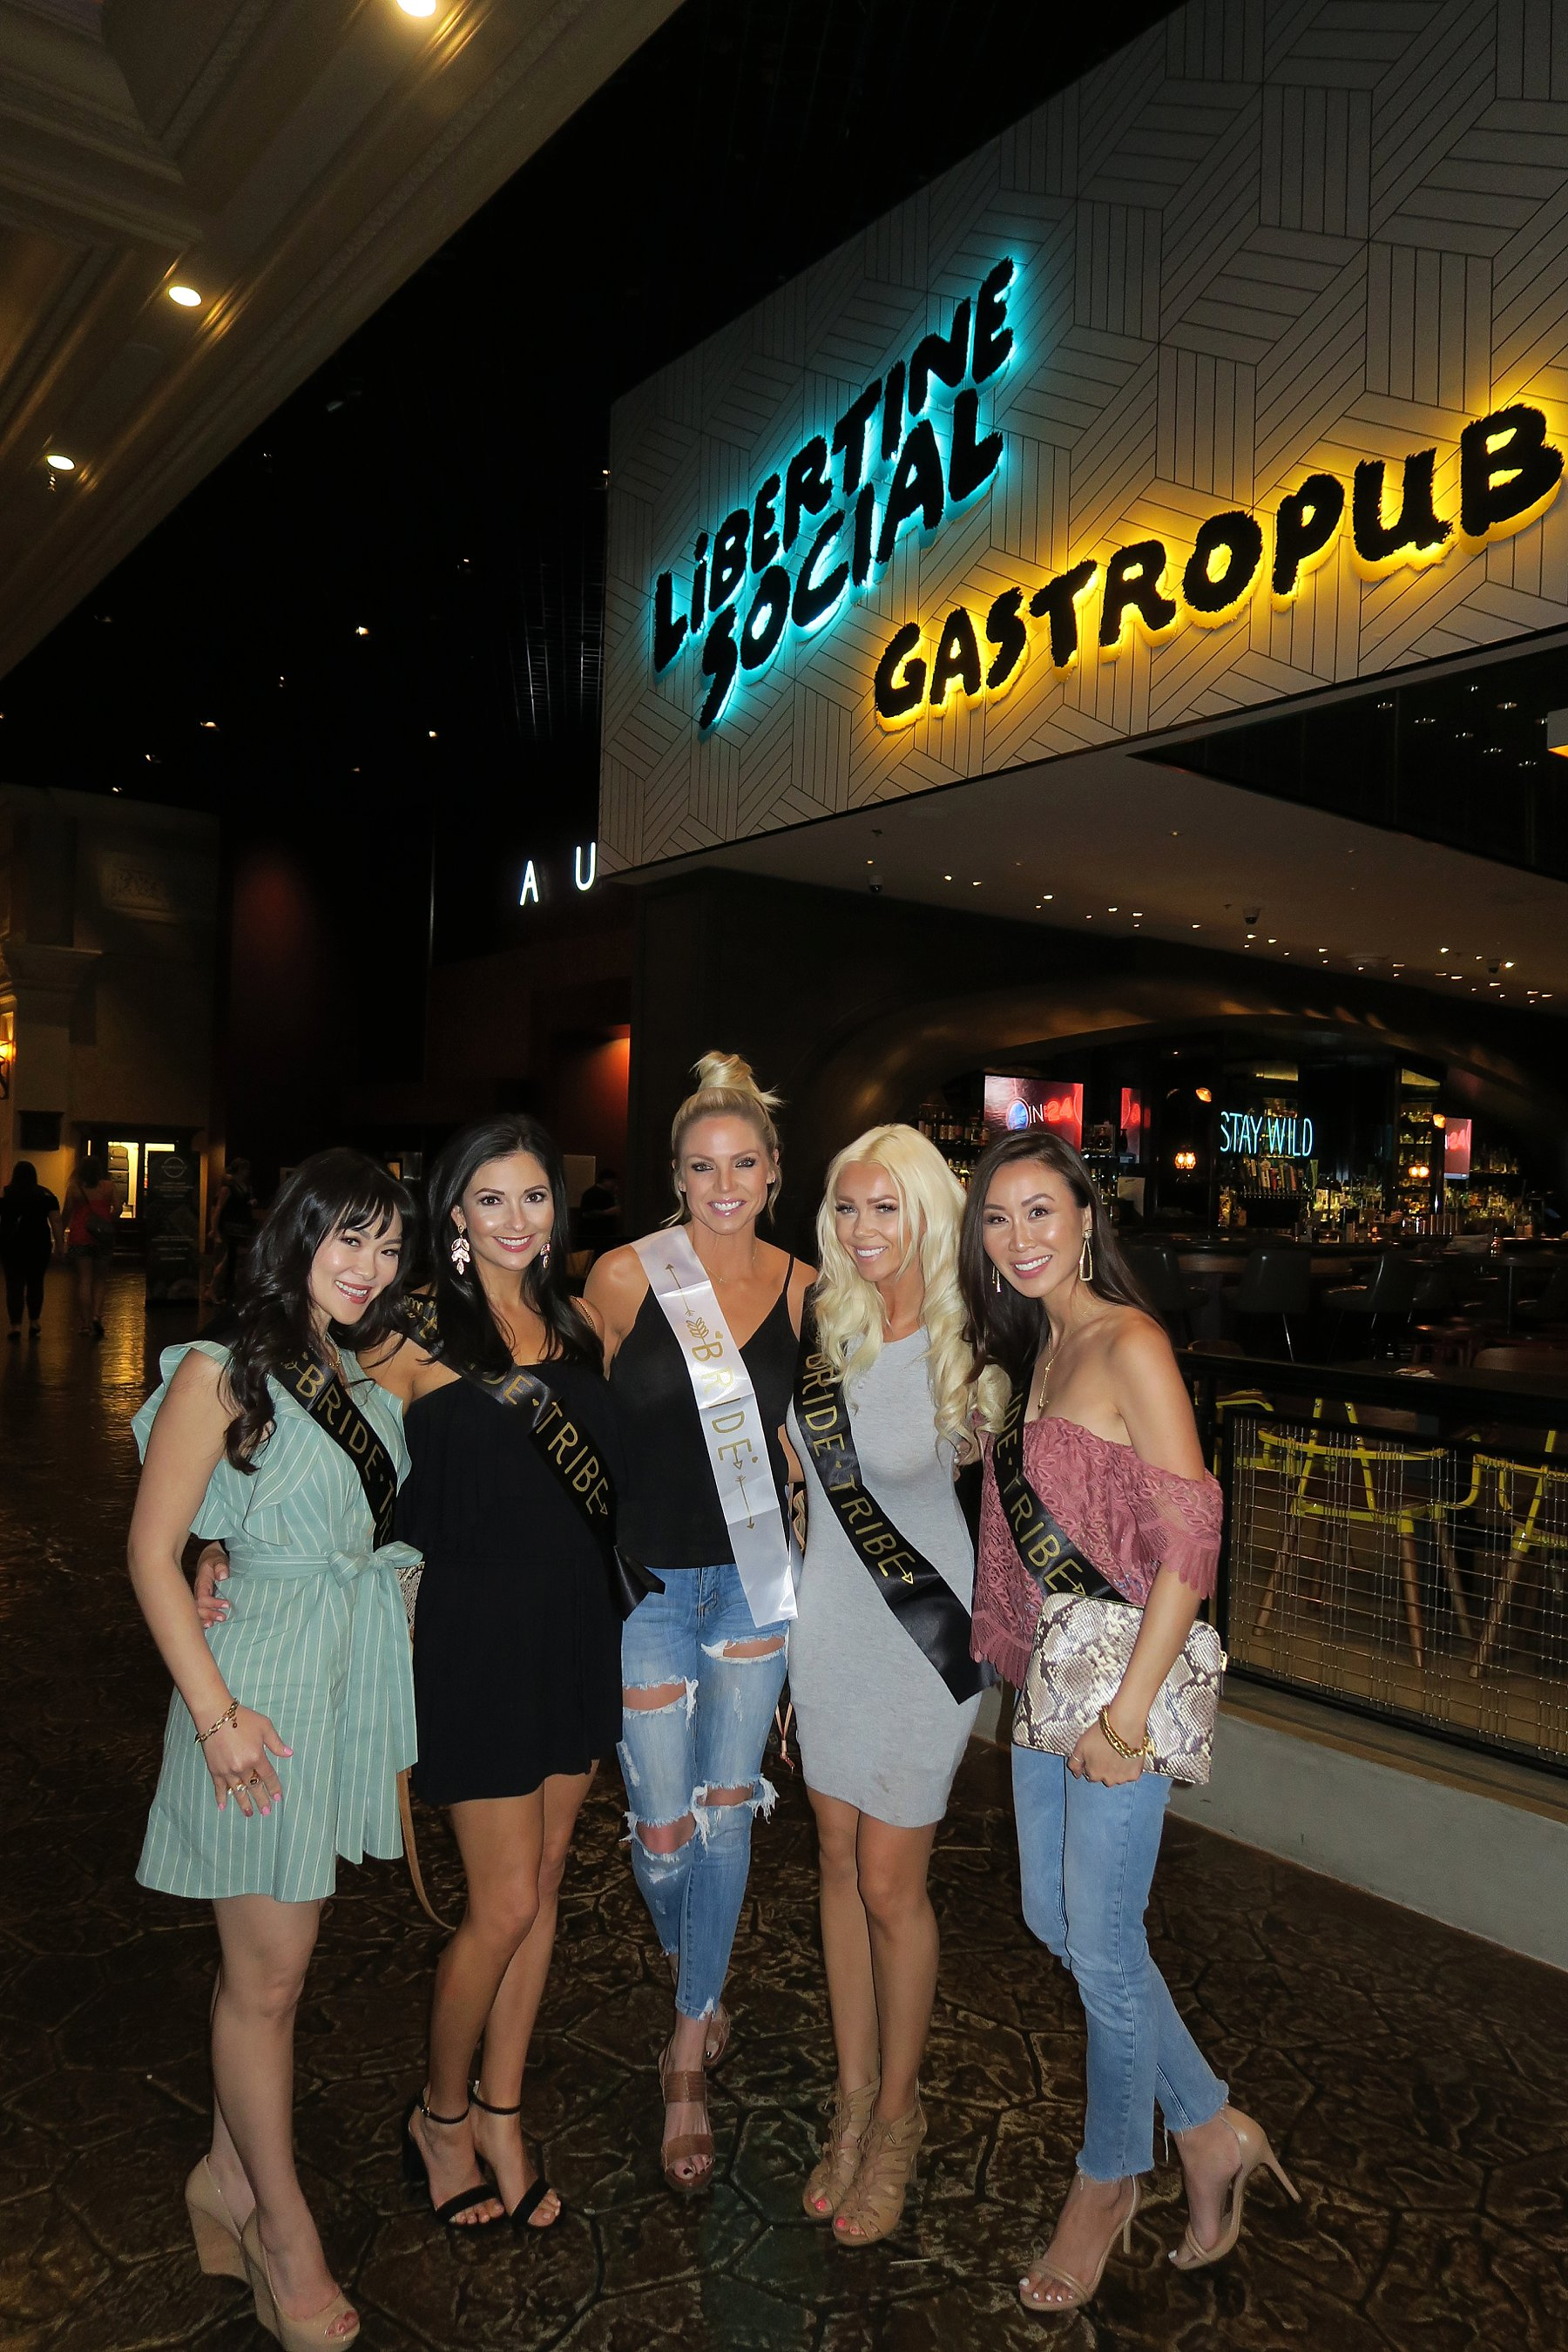 Vegas girl's trip fun things to do - eat at liberty social, like tapas